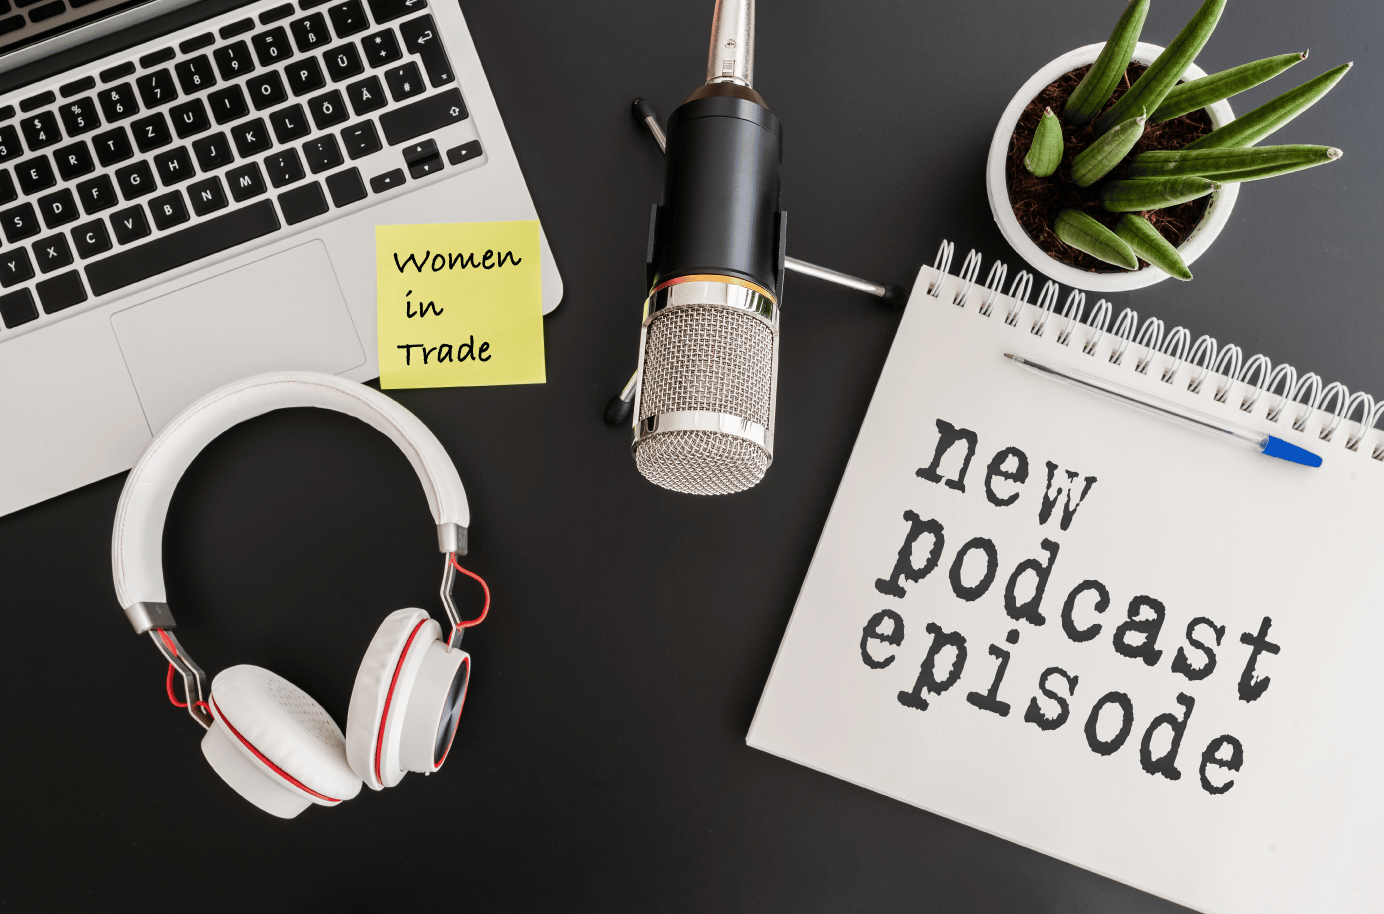 women in trade podcast